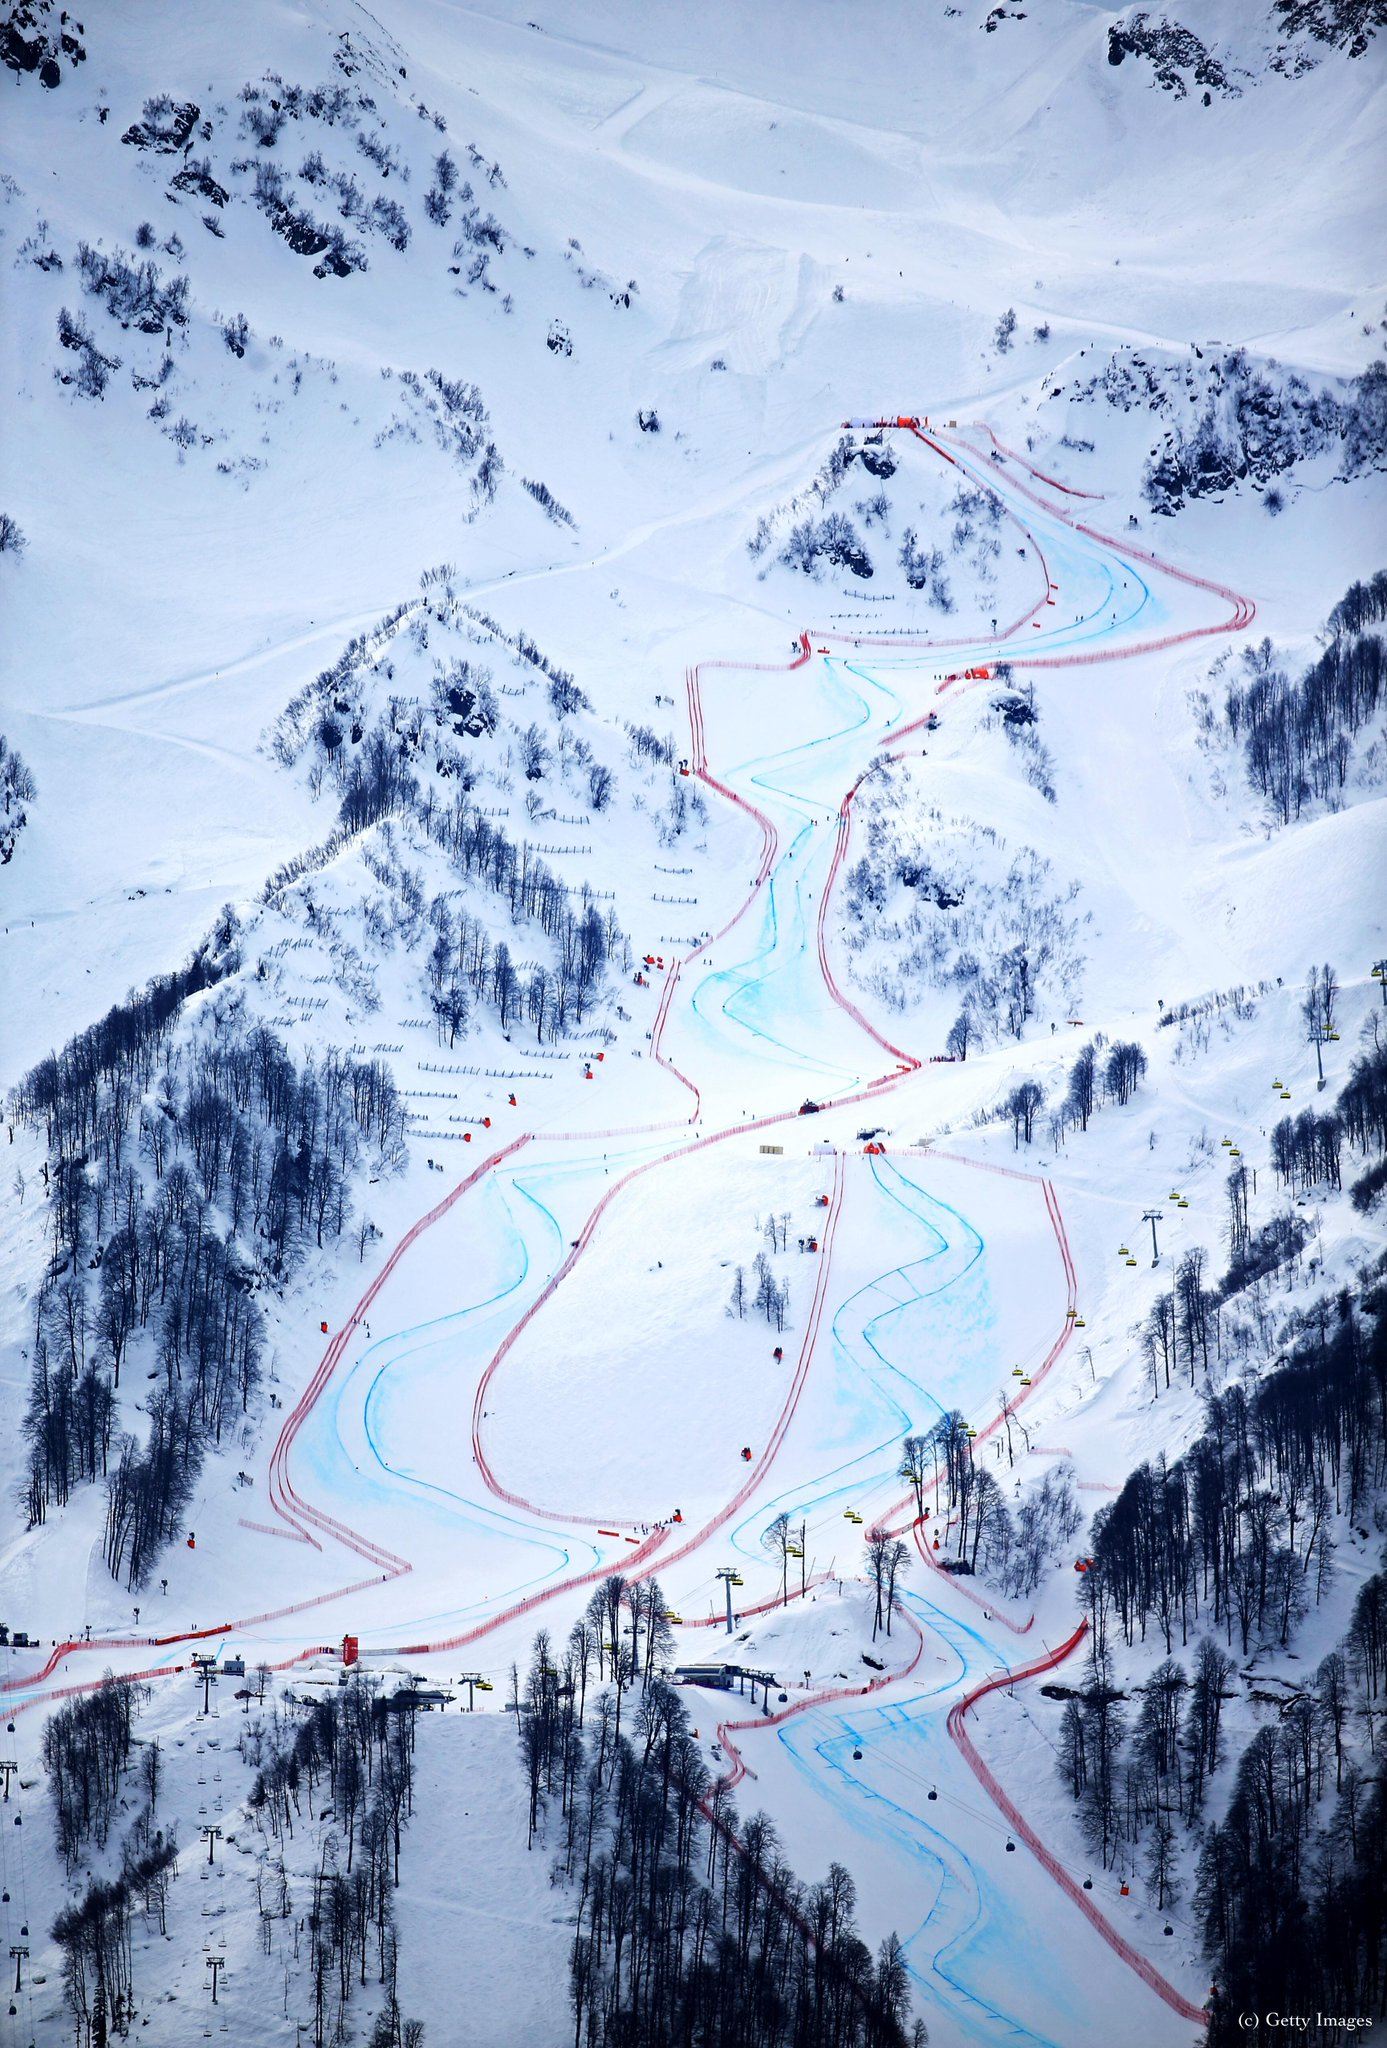 Downhill course #olympics http://t.co/oNzf0vr1uh